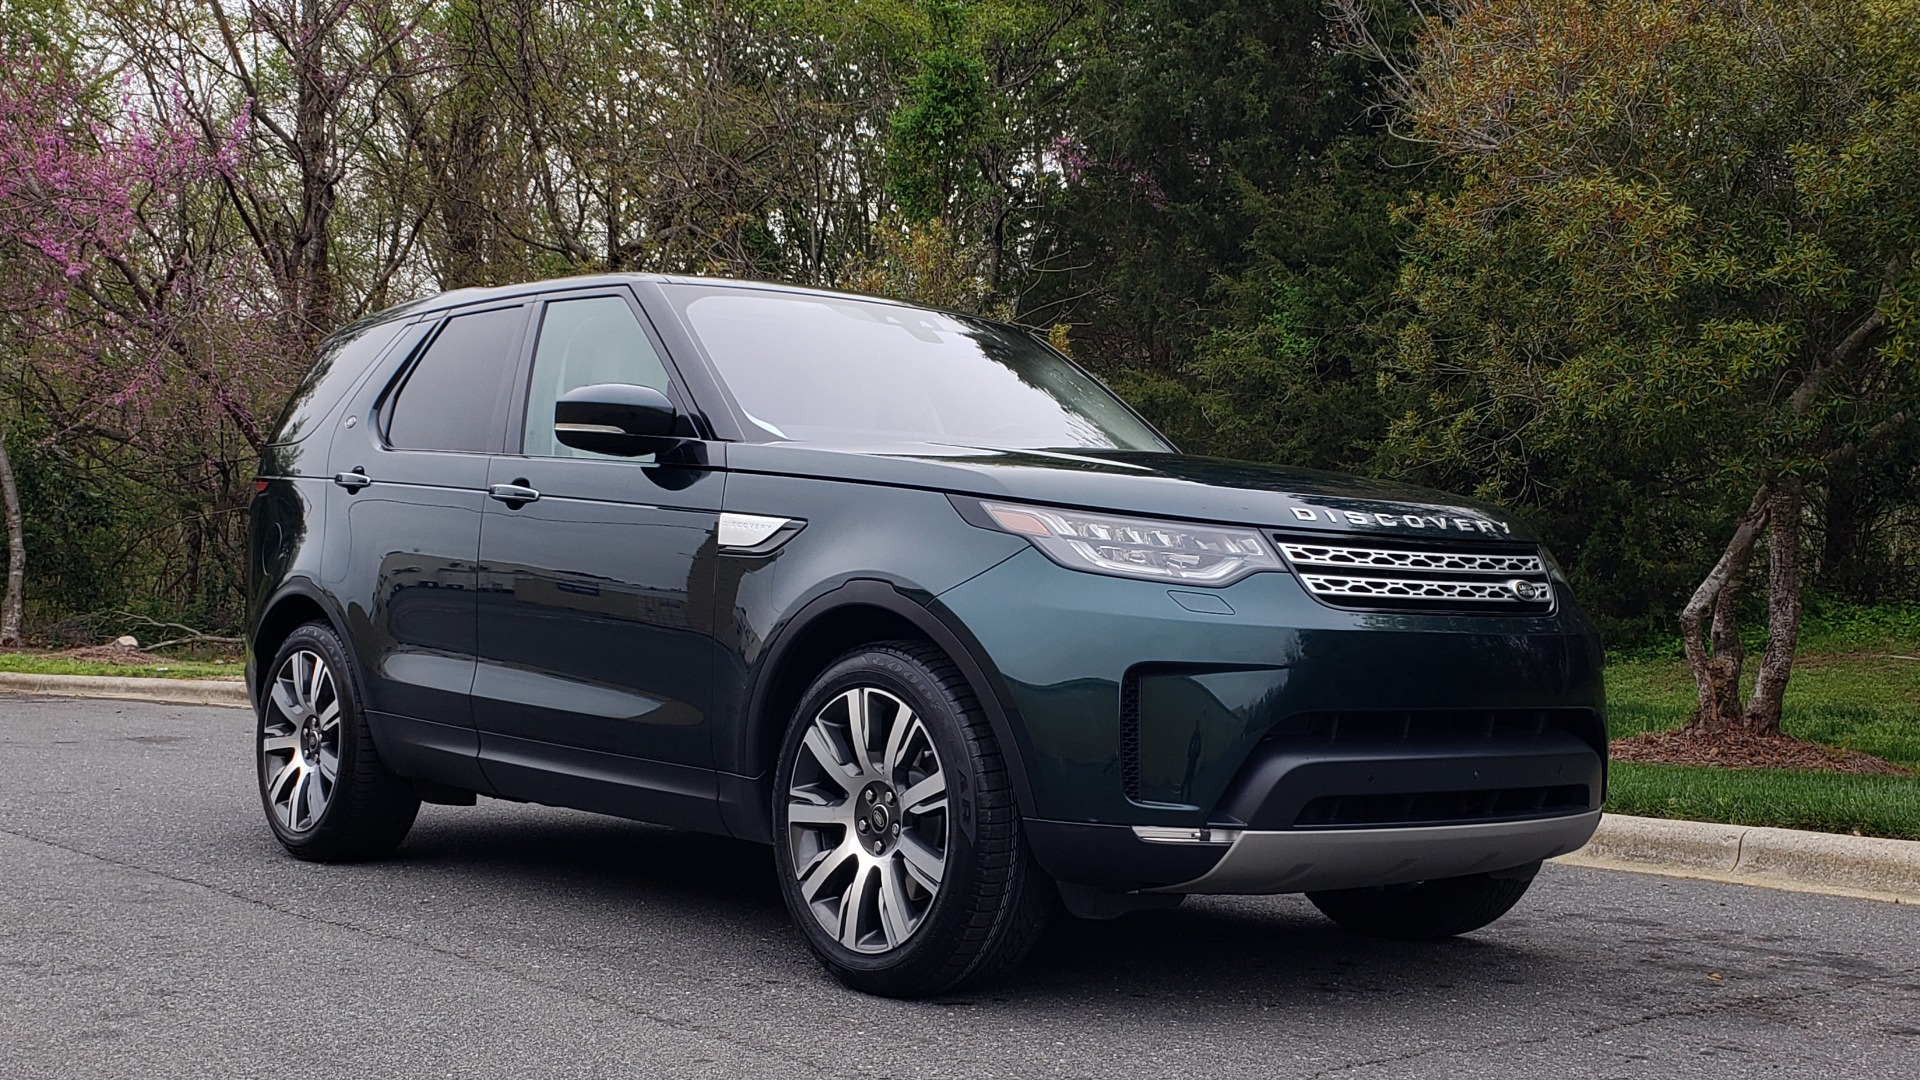 Used 2017 Land Rover DISCOVERY HSE LUXURY / 4WD / NAV / VISION ASST / DRIVE PKG / MERIDIAN for sale Sold at Formula Imports in Charlotte NC 28227 5